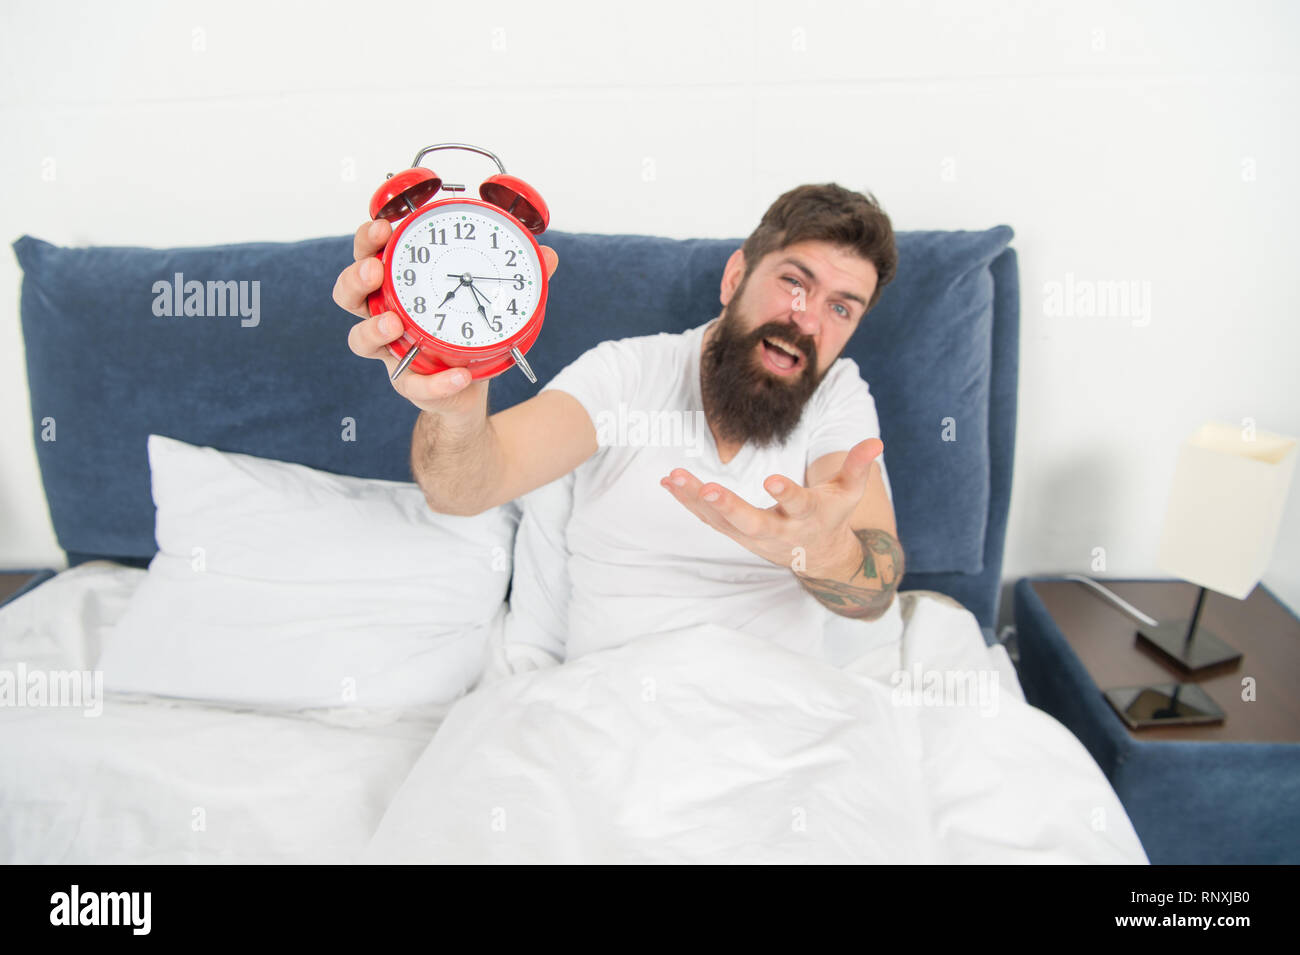 Problem with early morning awakening. Get up with alarm clock. Overslept again. Tips for waking up early. Tips for becoming an early riser. Man bearded hipster sleepy face in bed with alarm clock. - Stock Image